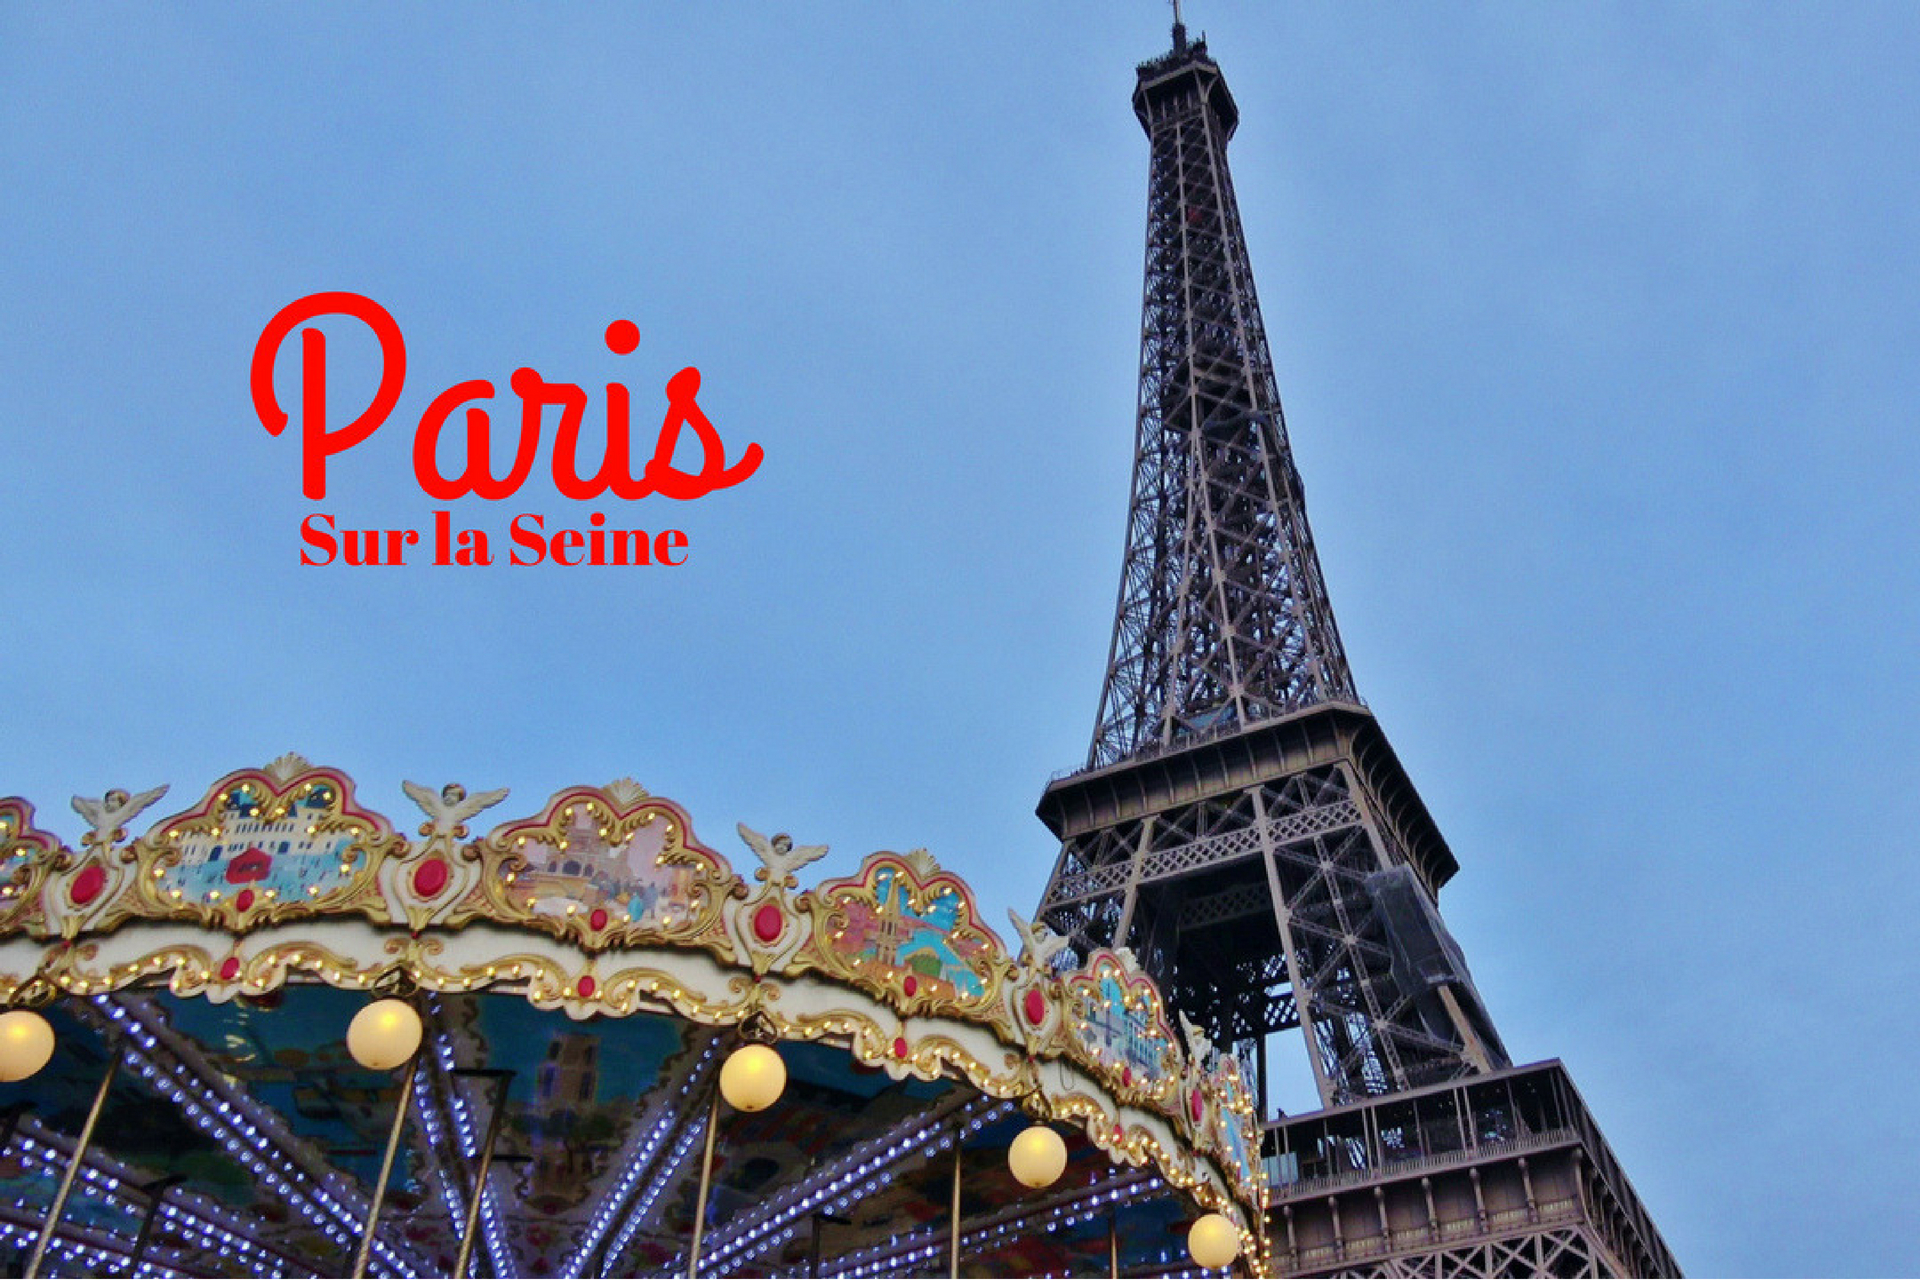 Paris sur la seine - Dreams World - Blog voyage